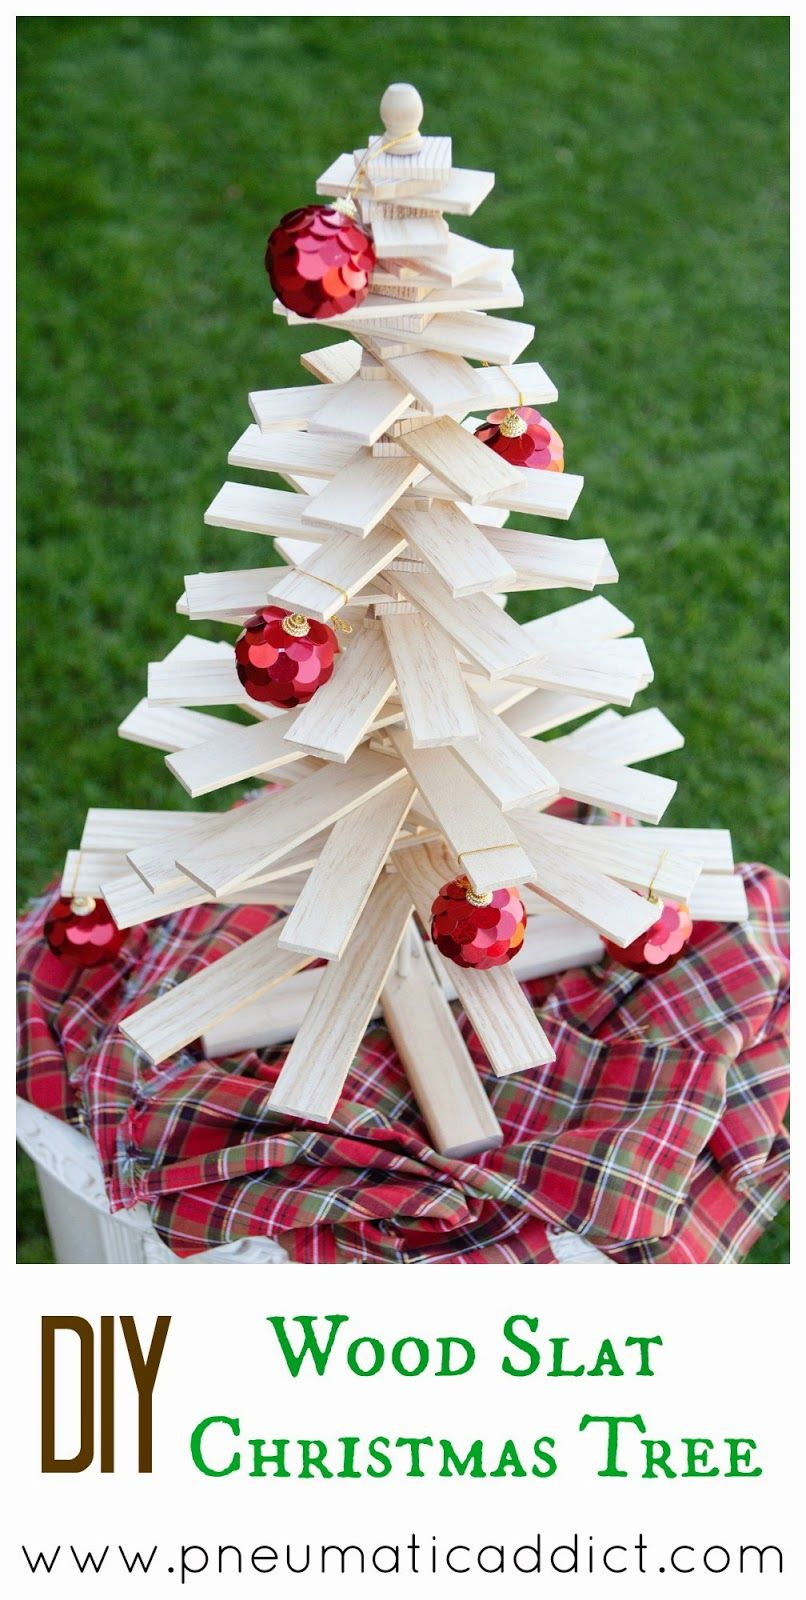 Learn to make your own DIY Wood Slat Christmas Tree. Tutorial and ...